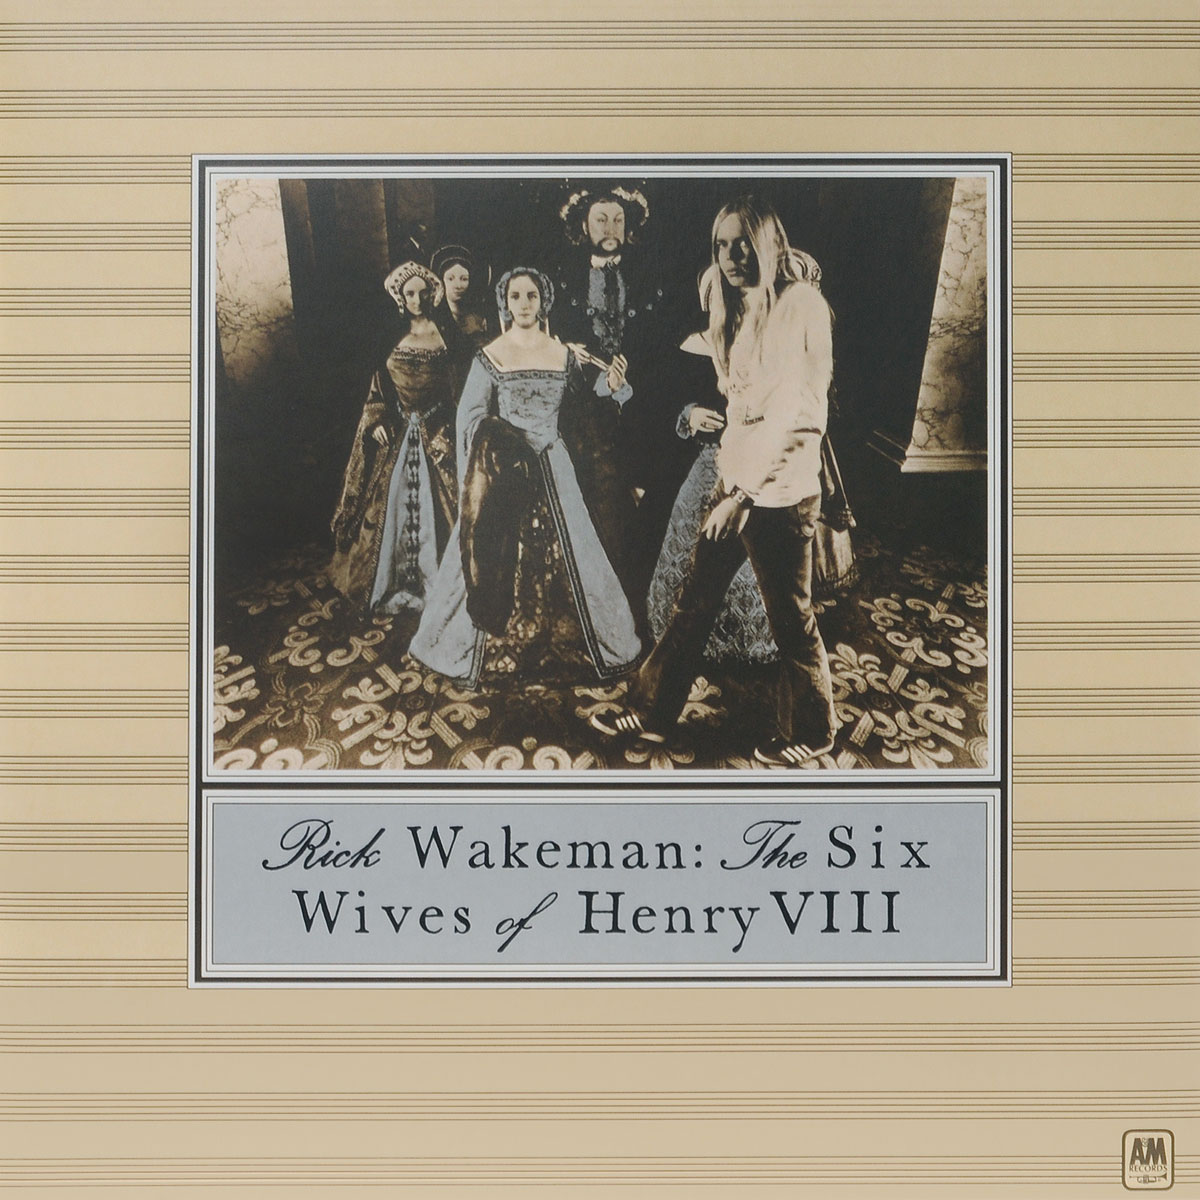 Рик Уэйкман Rick Wakeman. The Six Wives Of Henry VIII (LP) рик уэйкман rick wakeman the six wives of henry viii lp